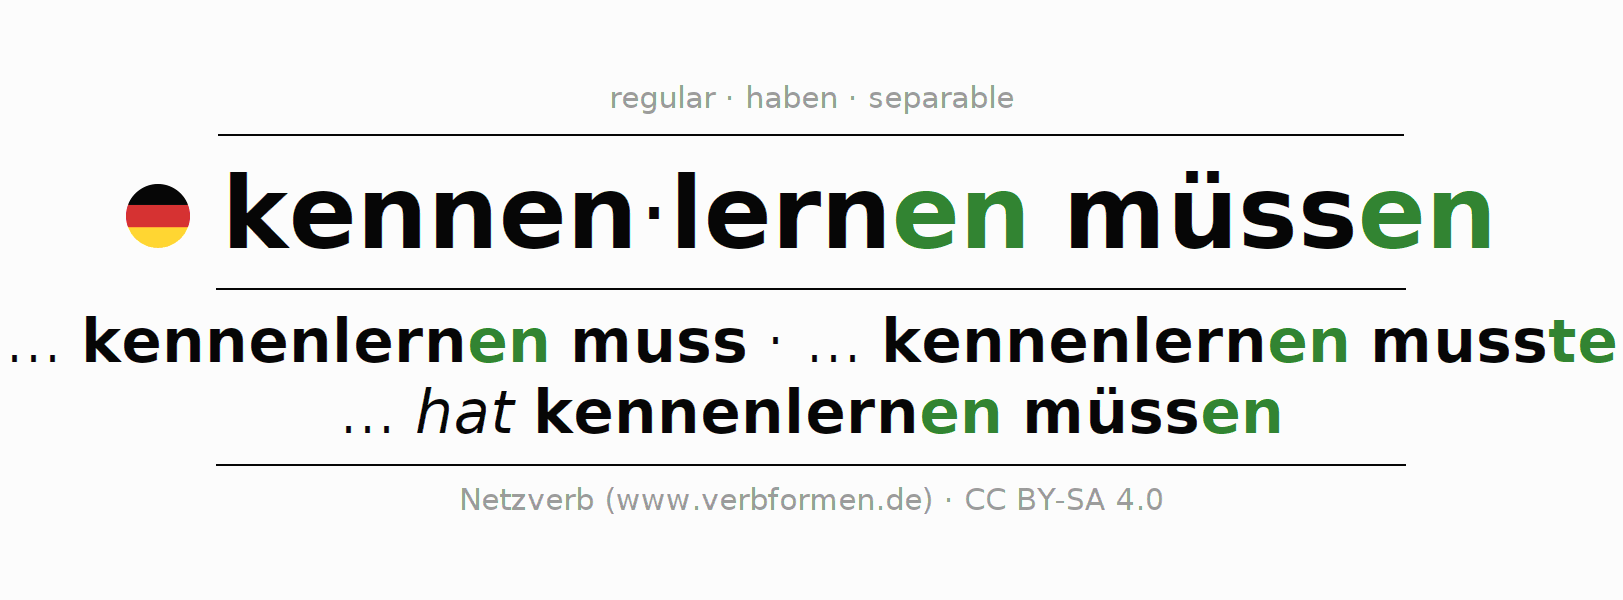 is kennenlernen a separable verb